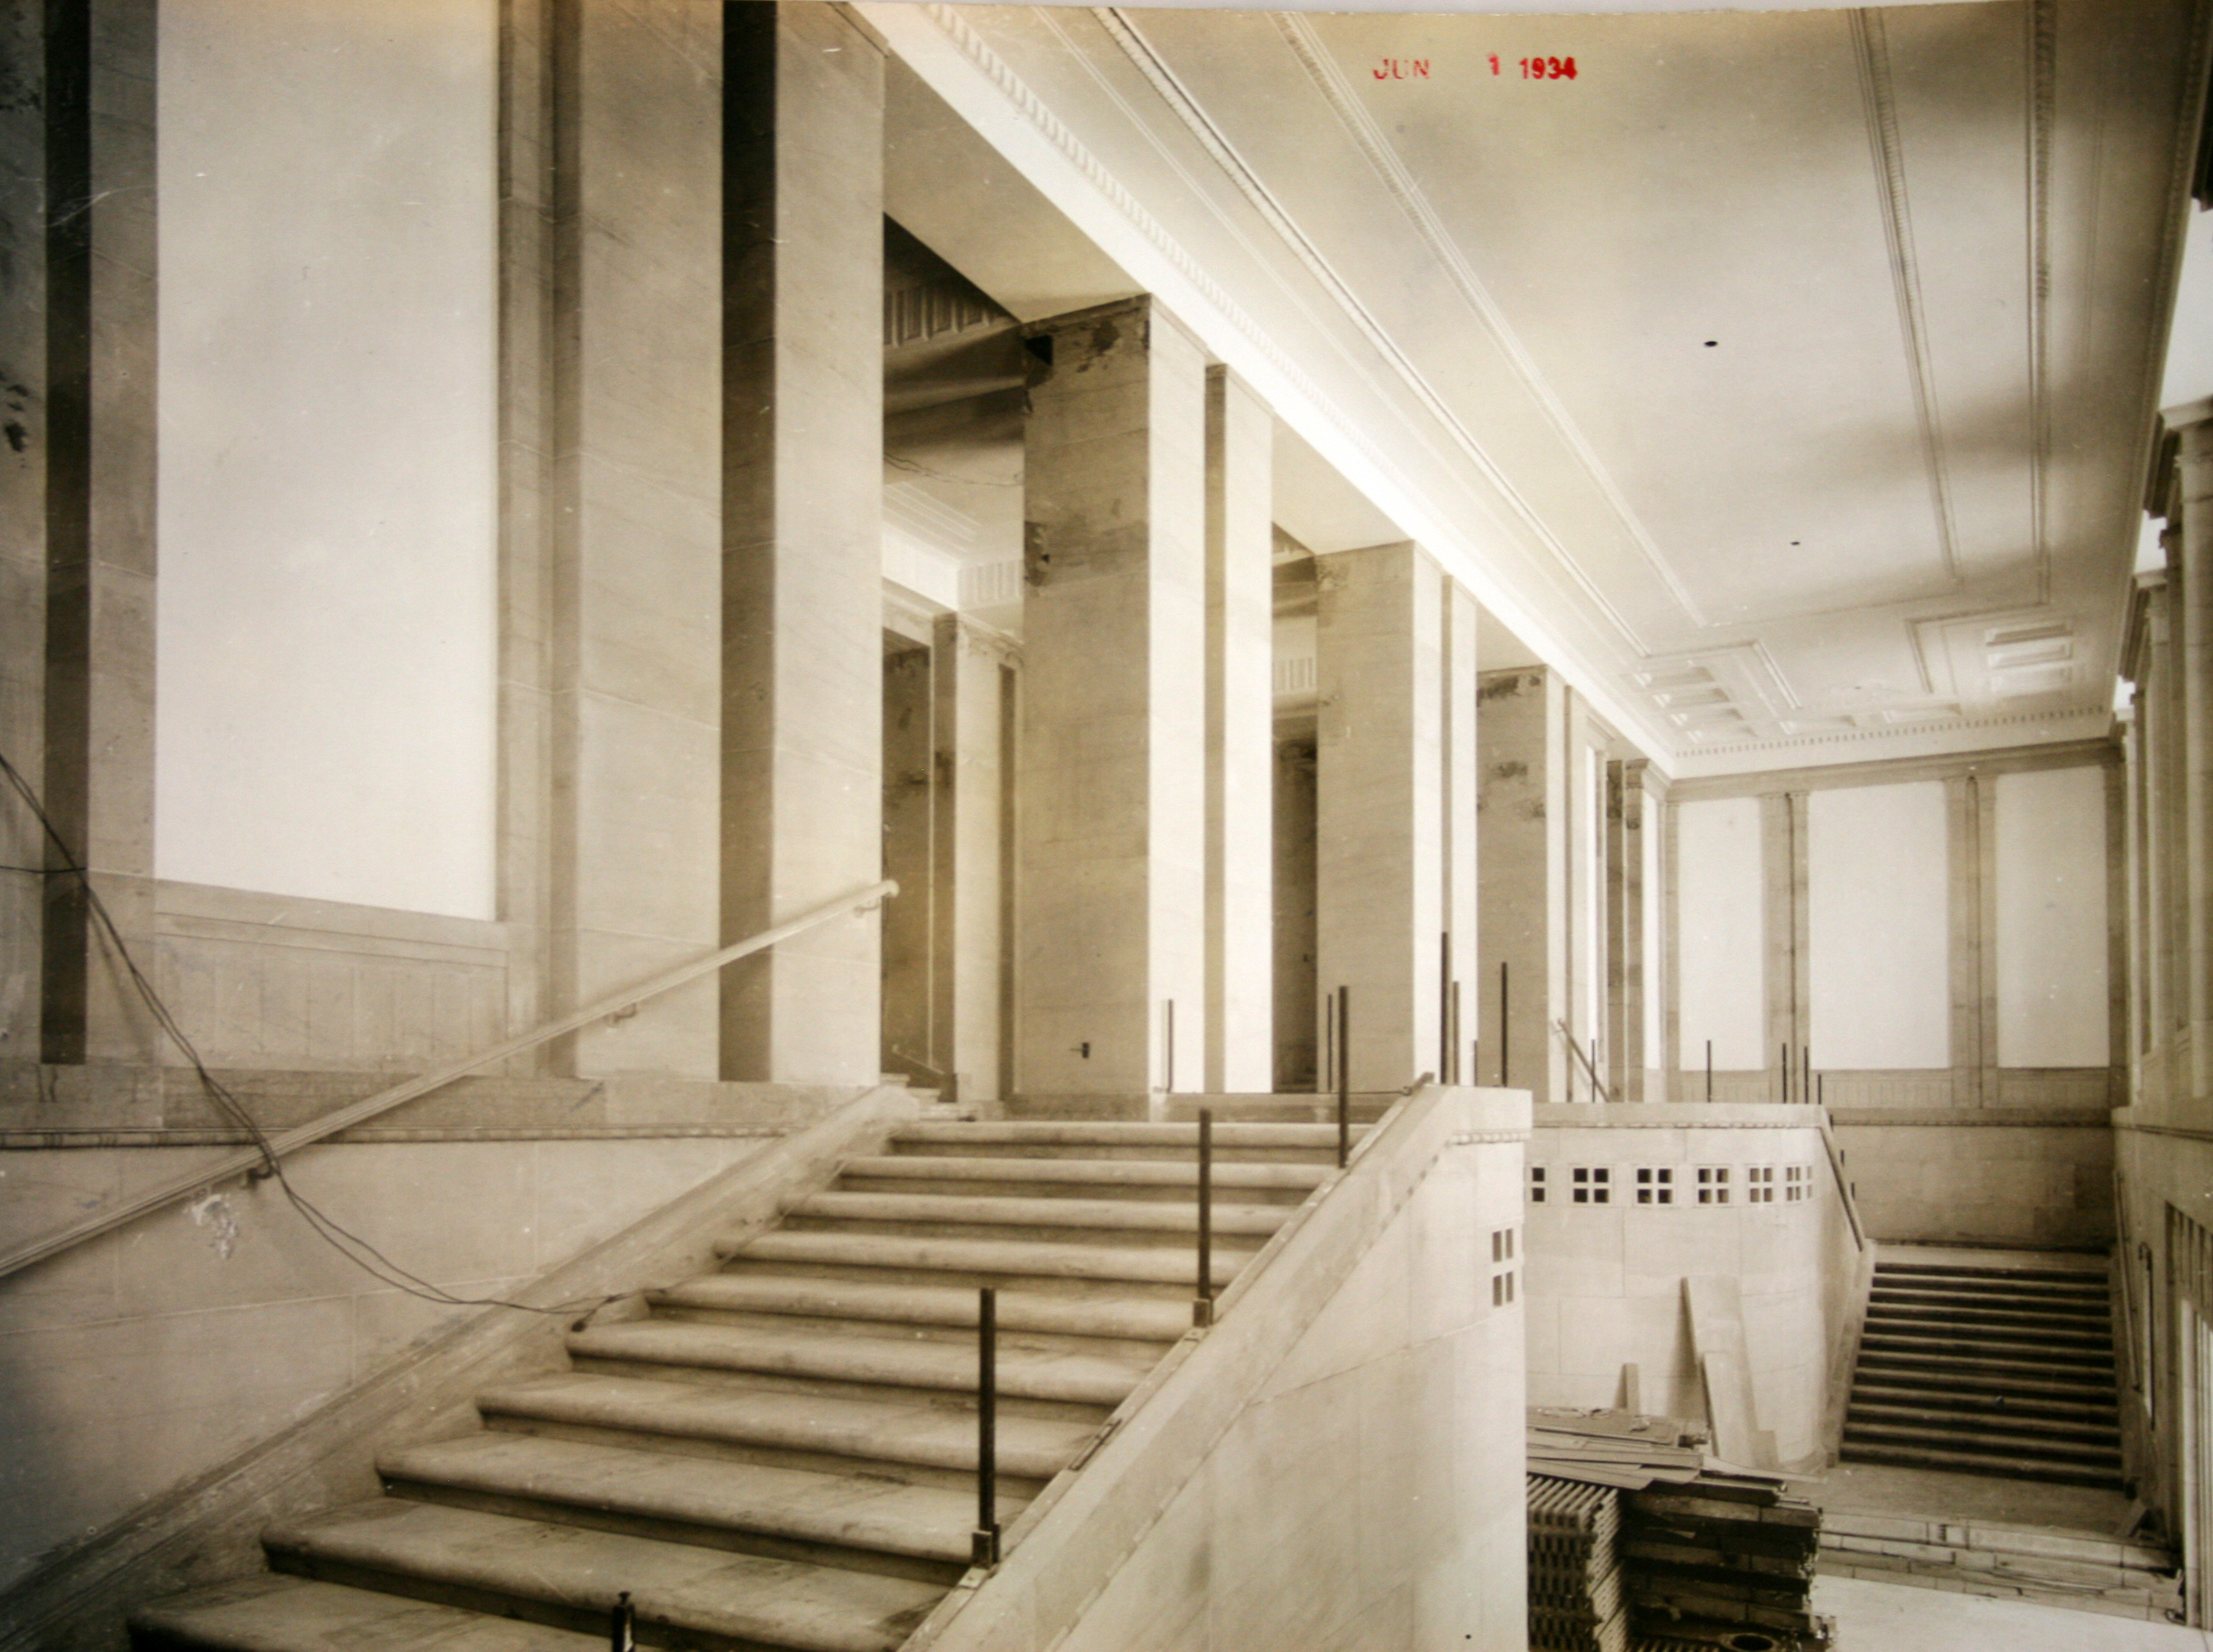 The monumental staircase between the first and second floors is prepared for the installation of a series of murals depicting important individuals in the history of law, c. 1936.